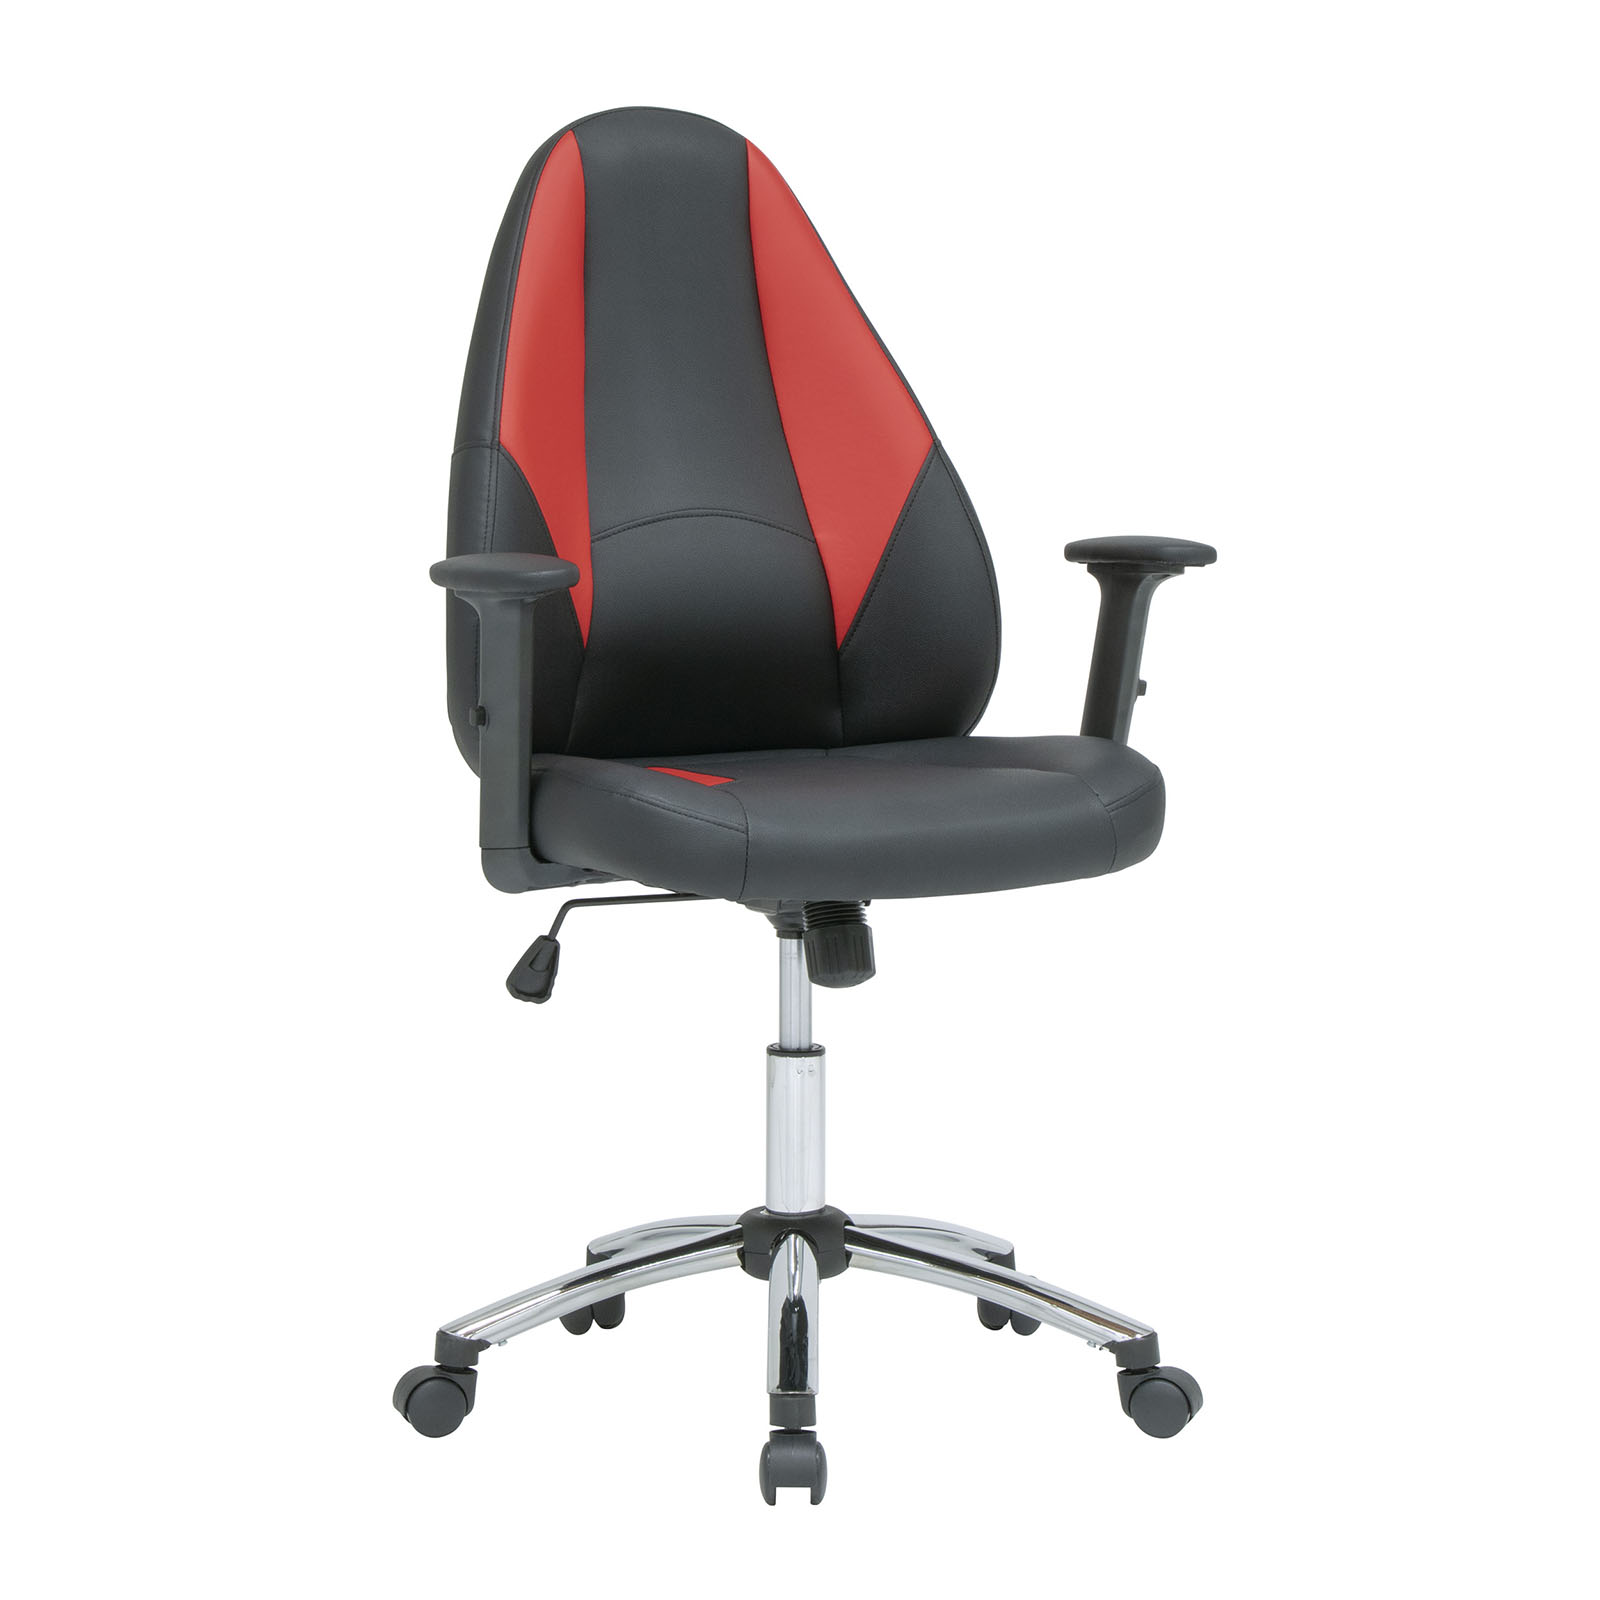 10661 Mid Back Gaming Chair